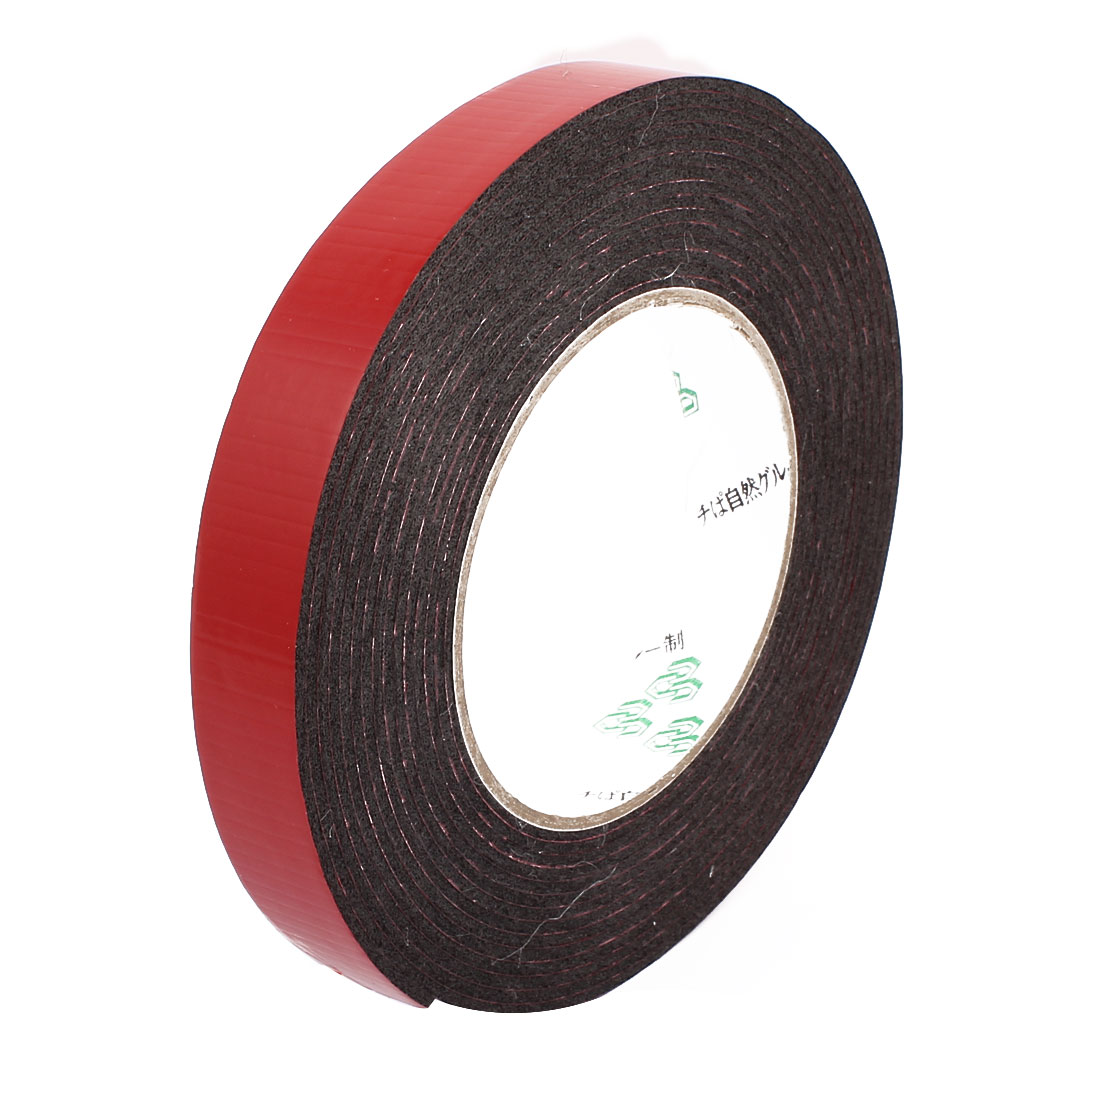 20mm x 1mm Car Double sided Self Adhesive Shockproof Foam Tape 5 Meters Length